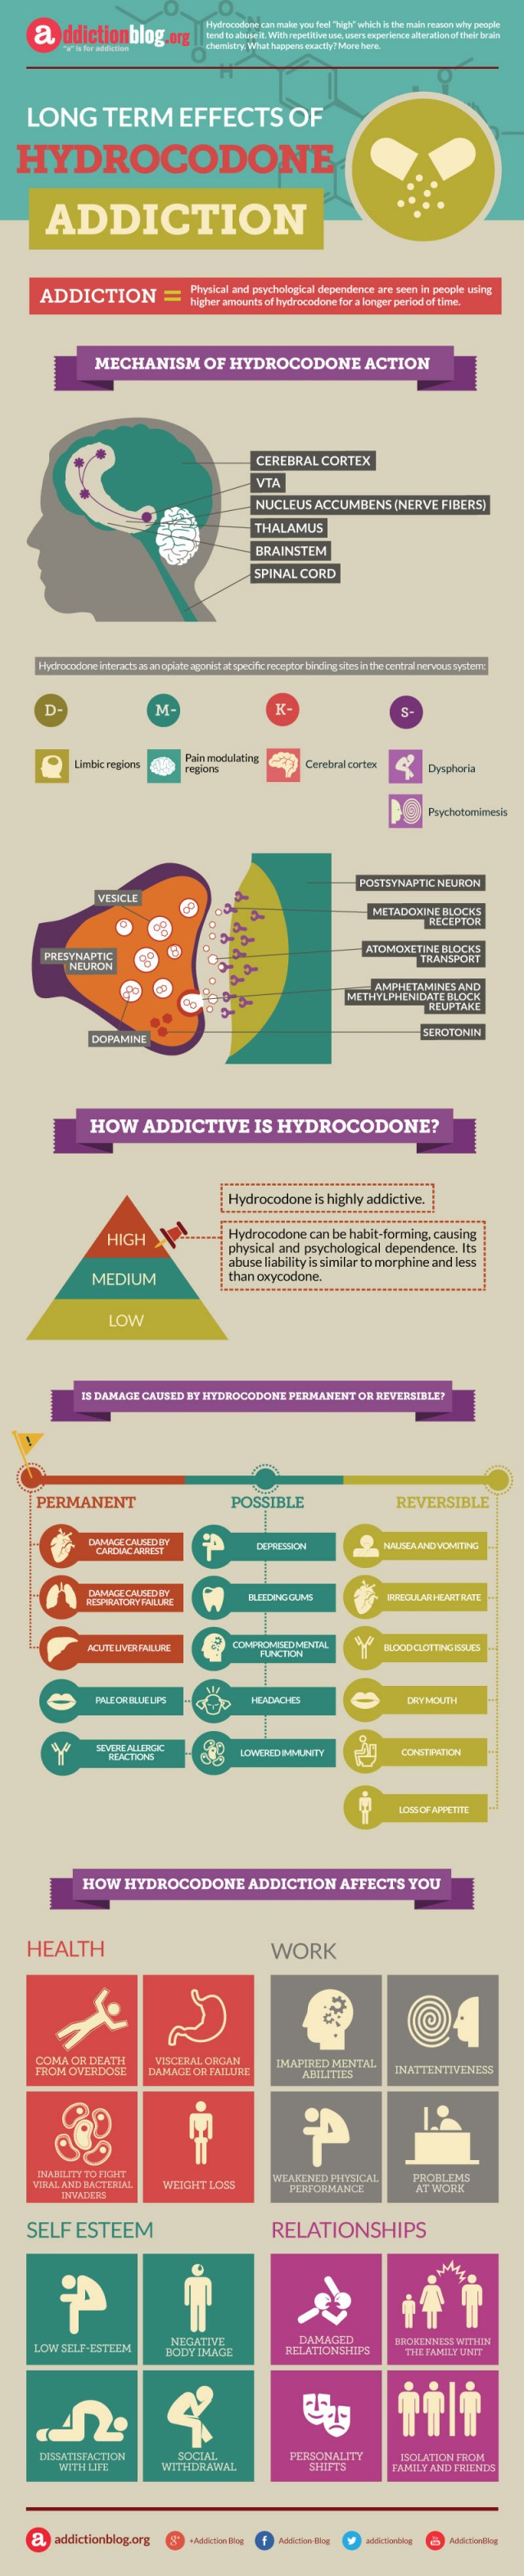 Long term effects of Hydrocodone addiction (INFOGRAPHIC)